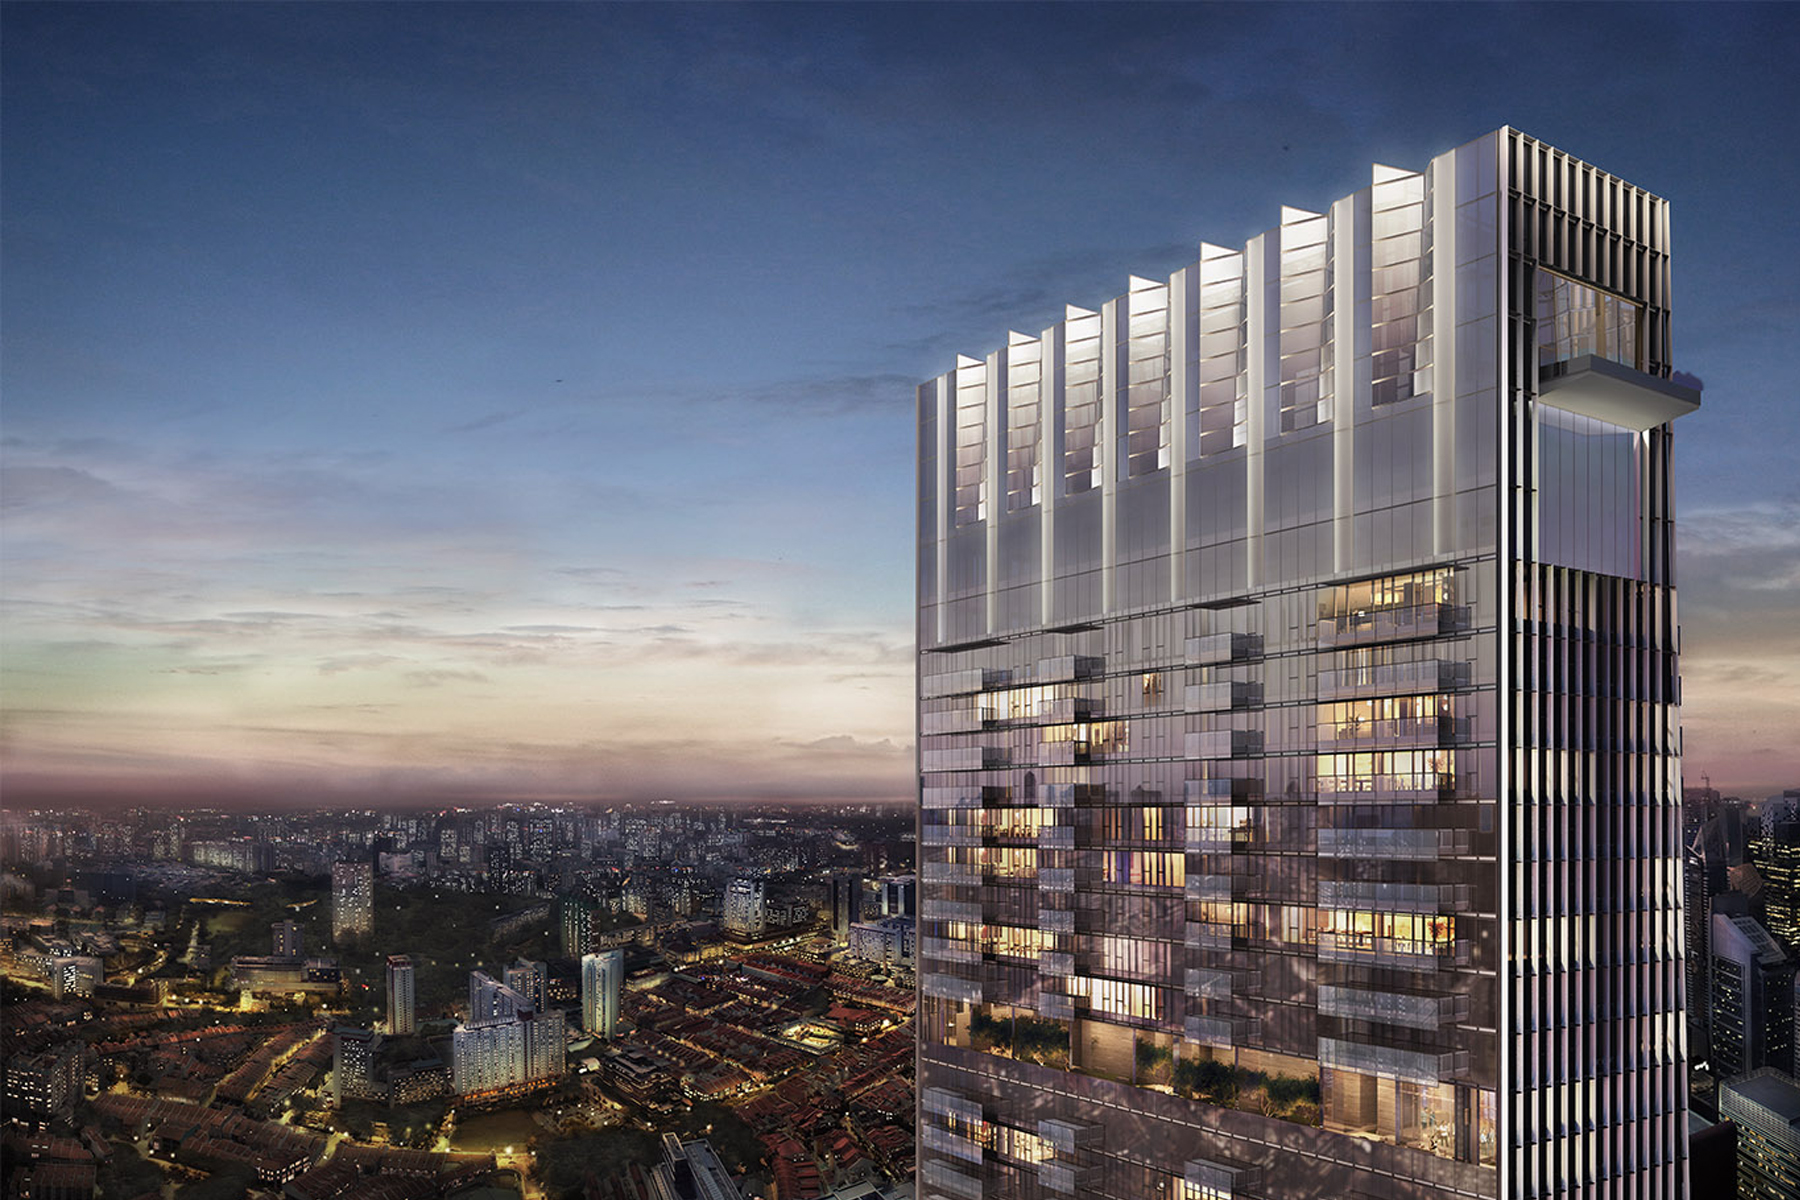 Кондоминиум для того Продажа на The Wallich Residence Super Penthouse 3 Wallich Street (Super Penthouse) Singapore, Города В Сингапуре 078882 Сингапур